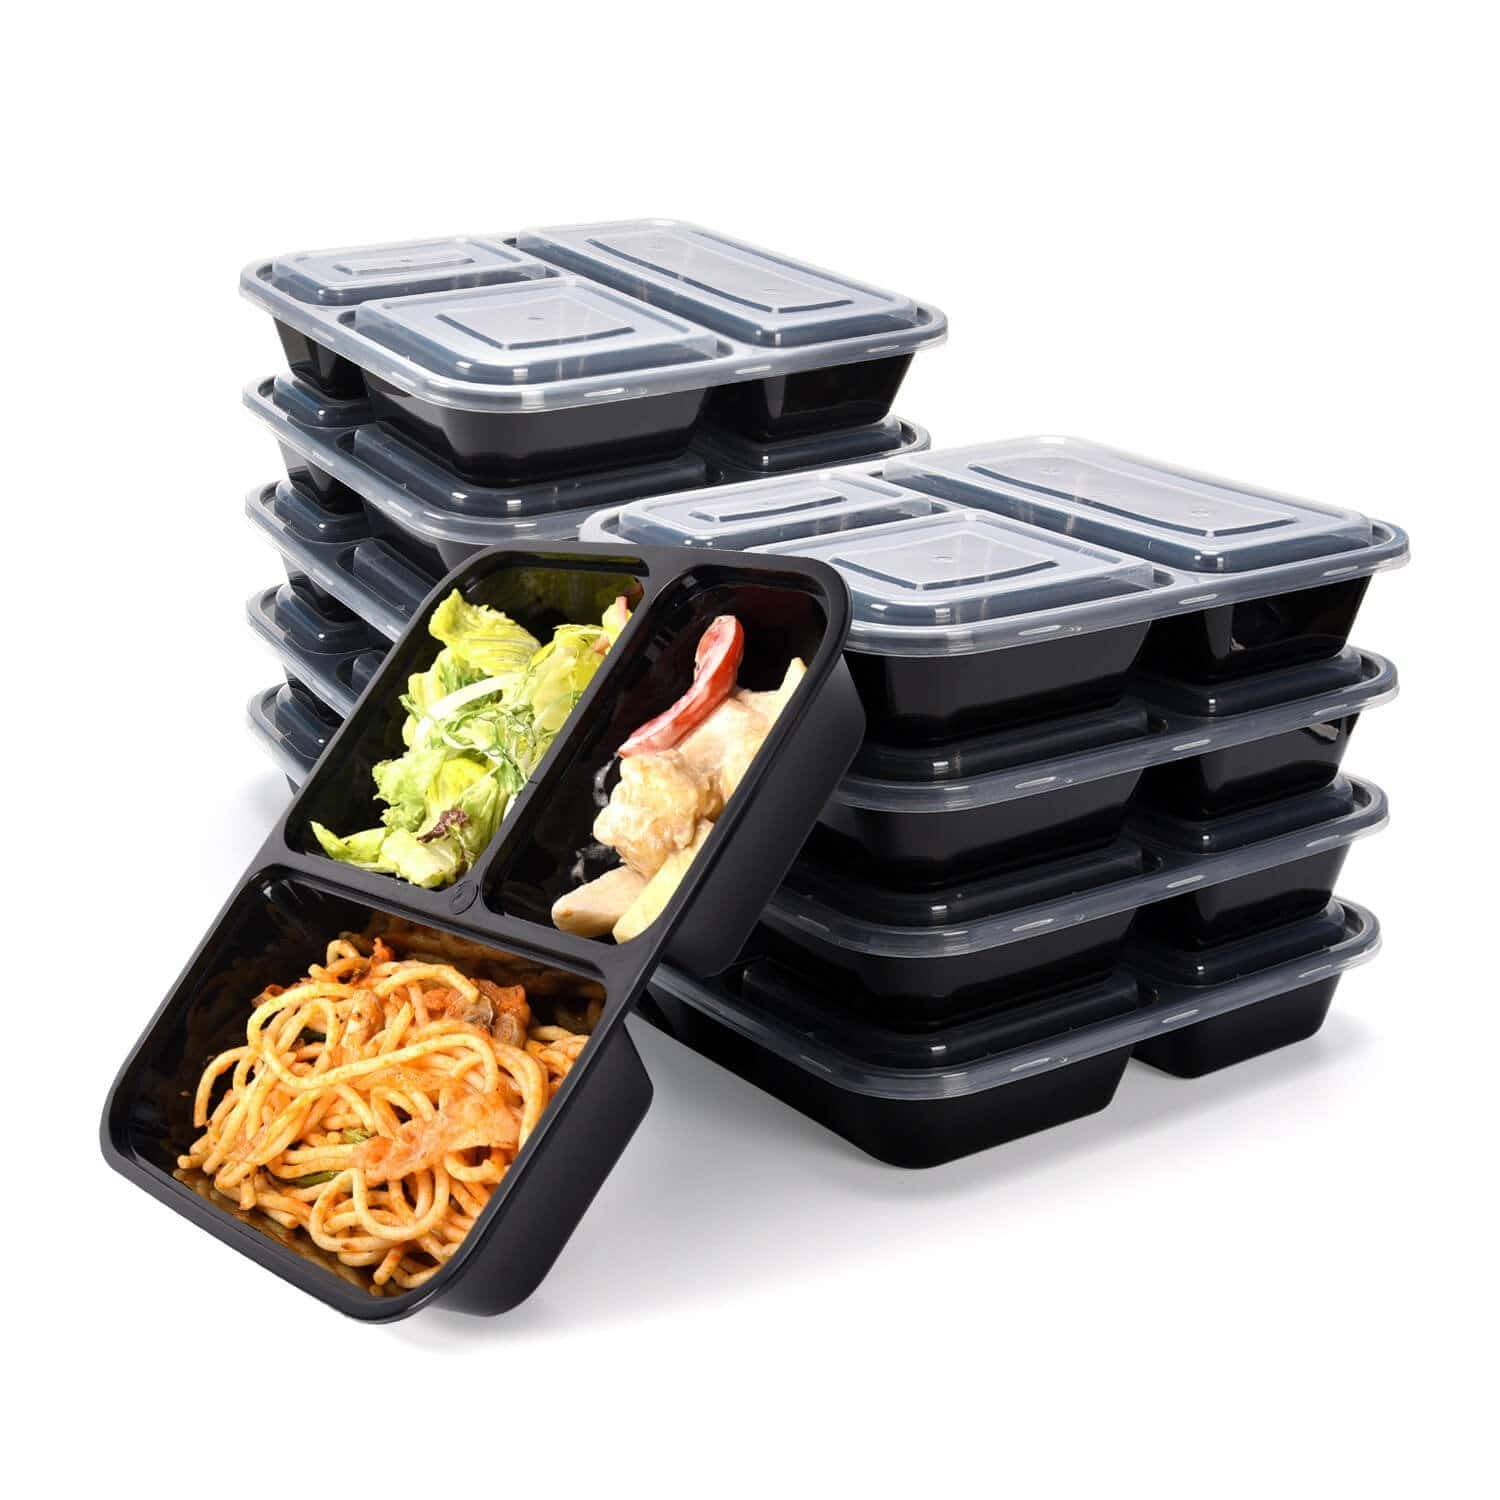 10 Pack Microwaveable Food Containers Meal Prep Storage Containers